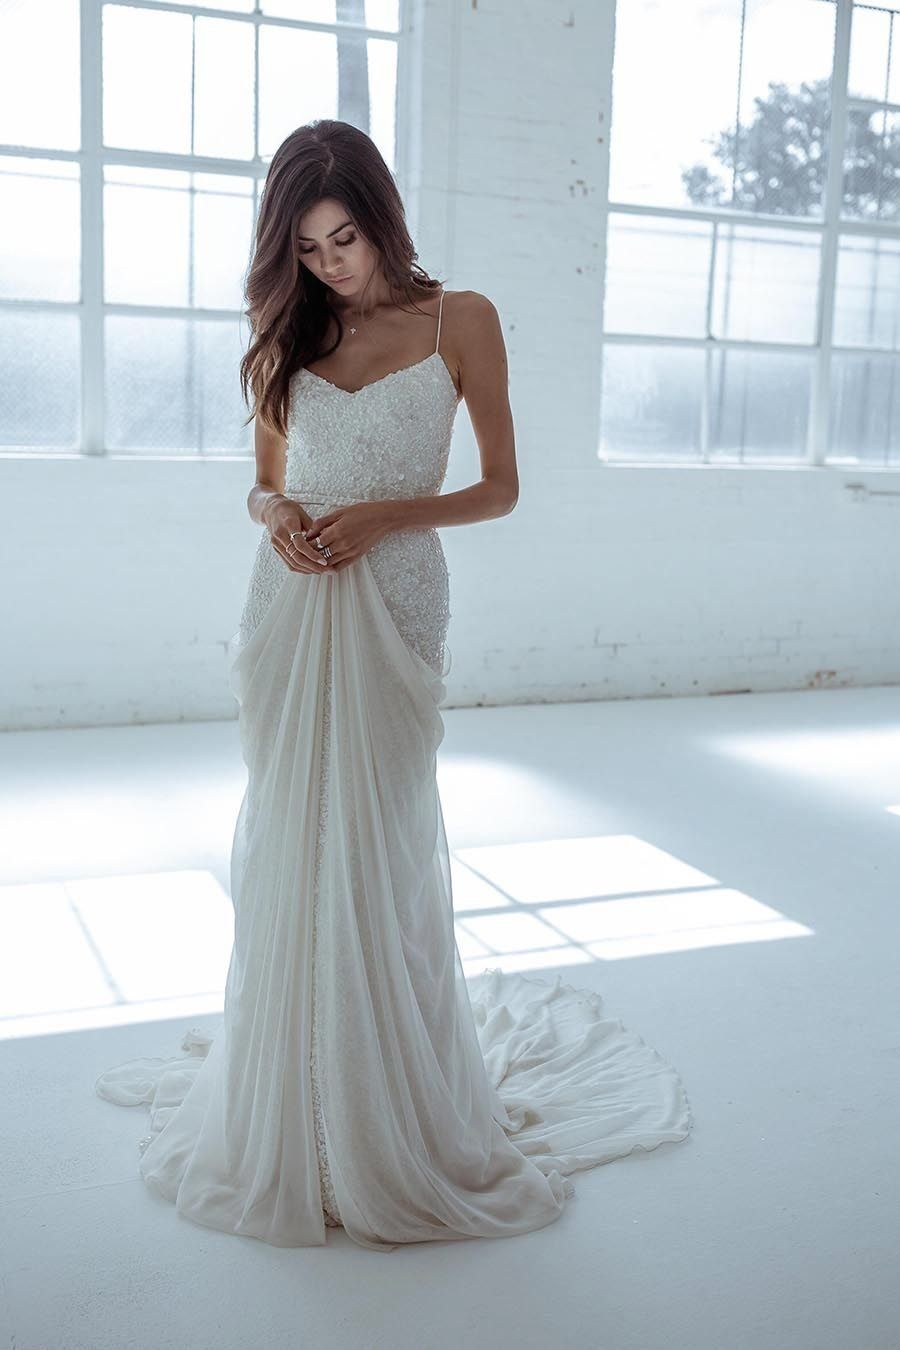 12 Stunning Wedding Dresses for NonTraditional Singapore